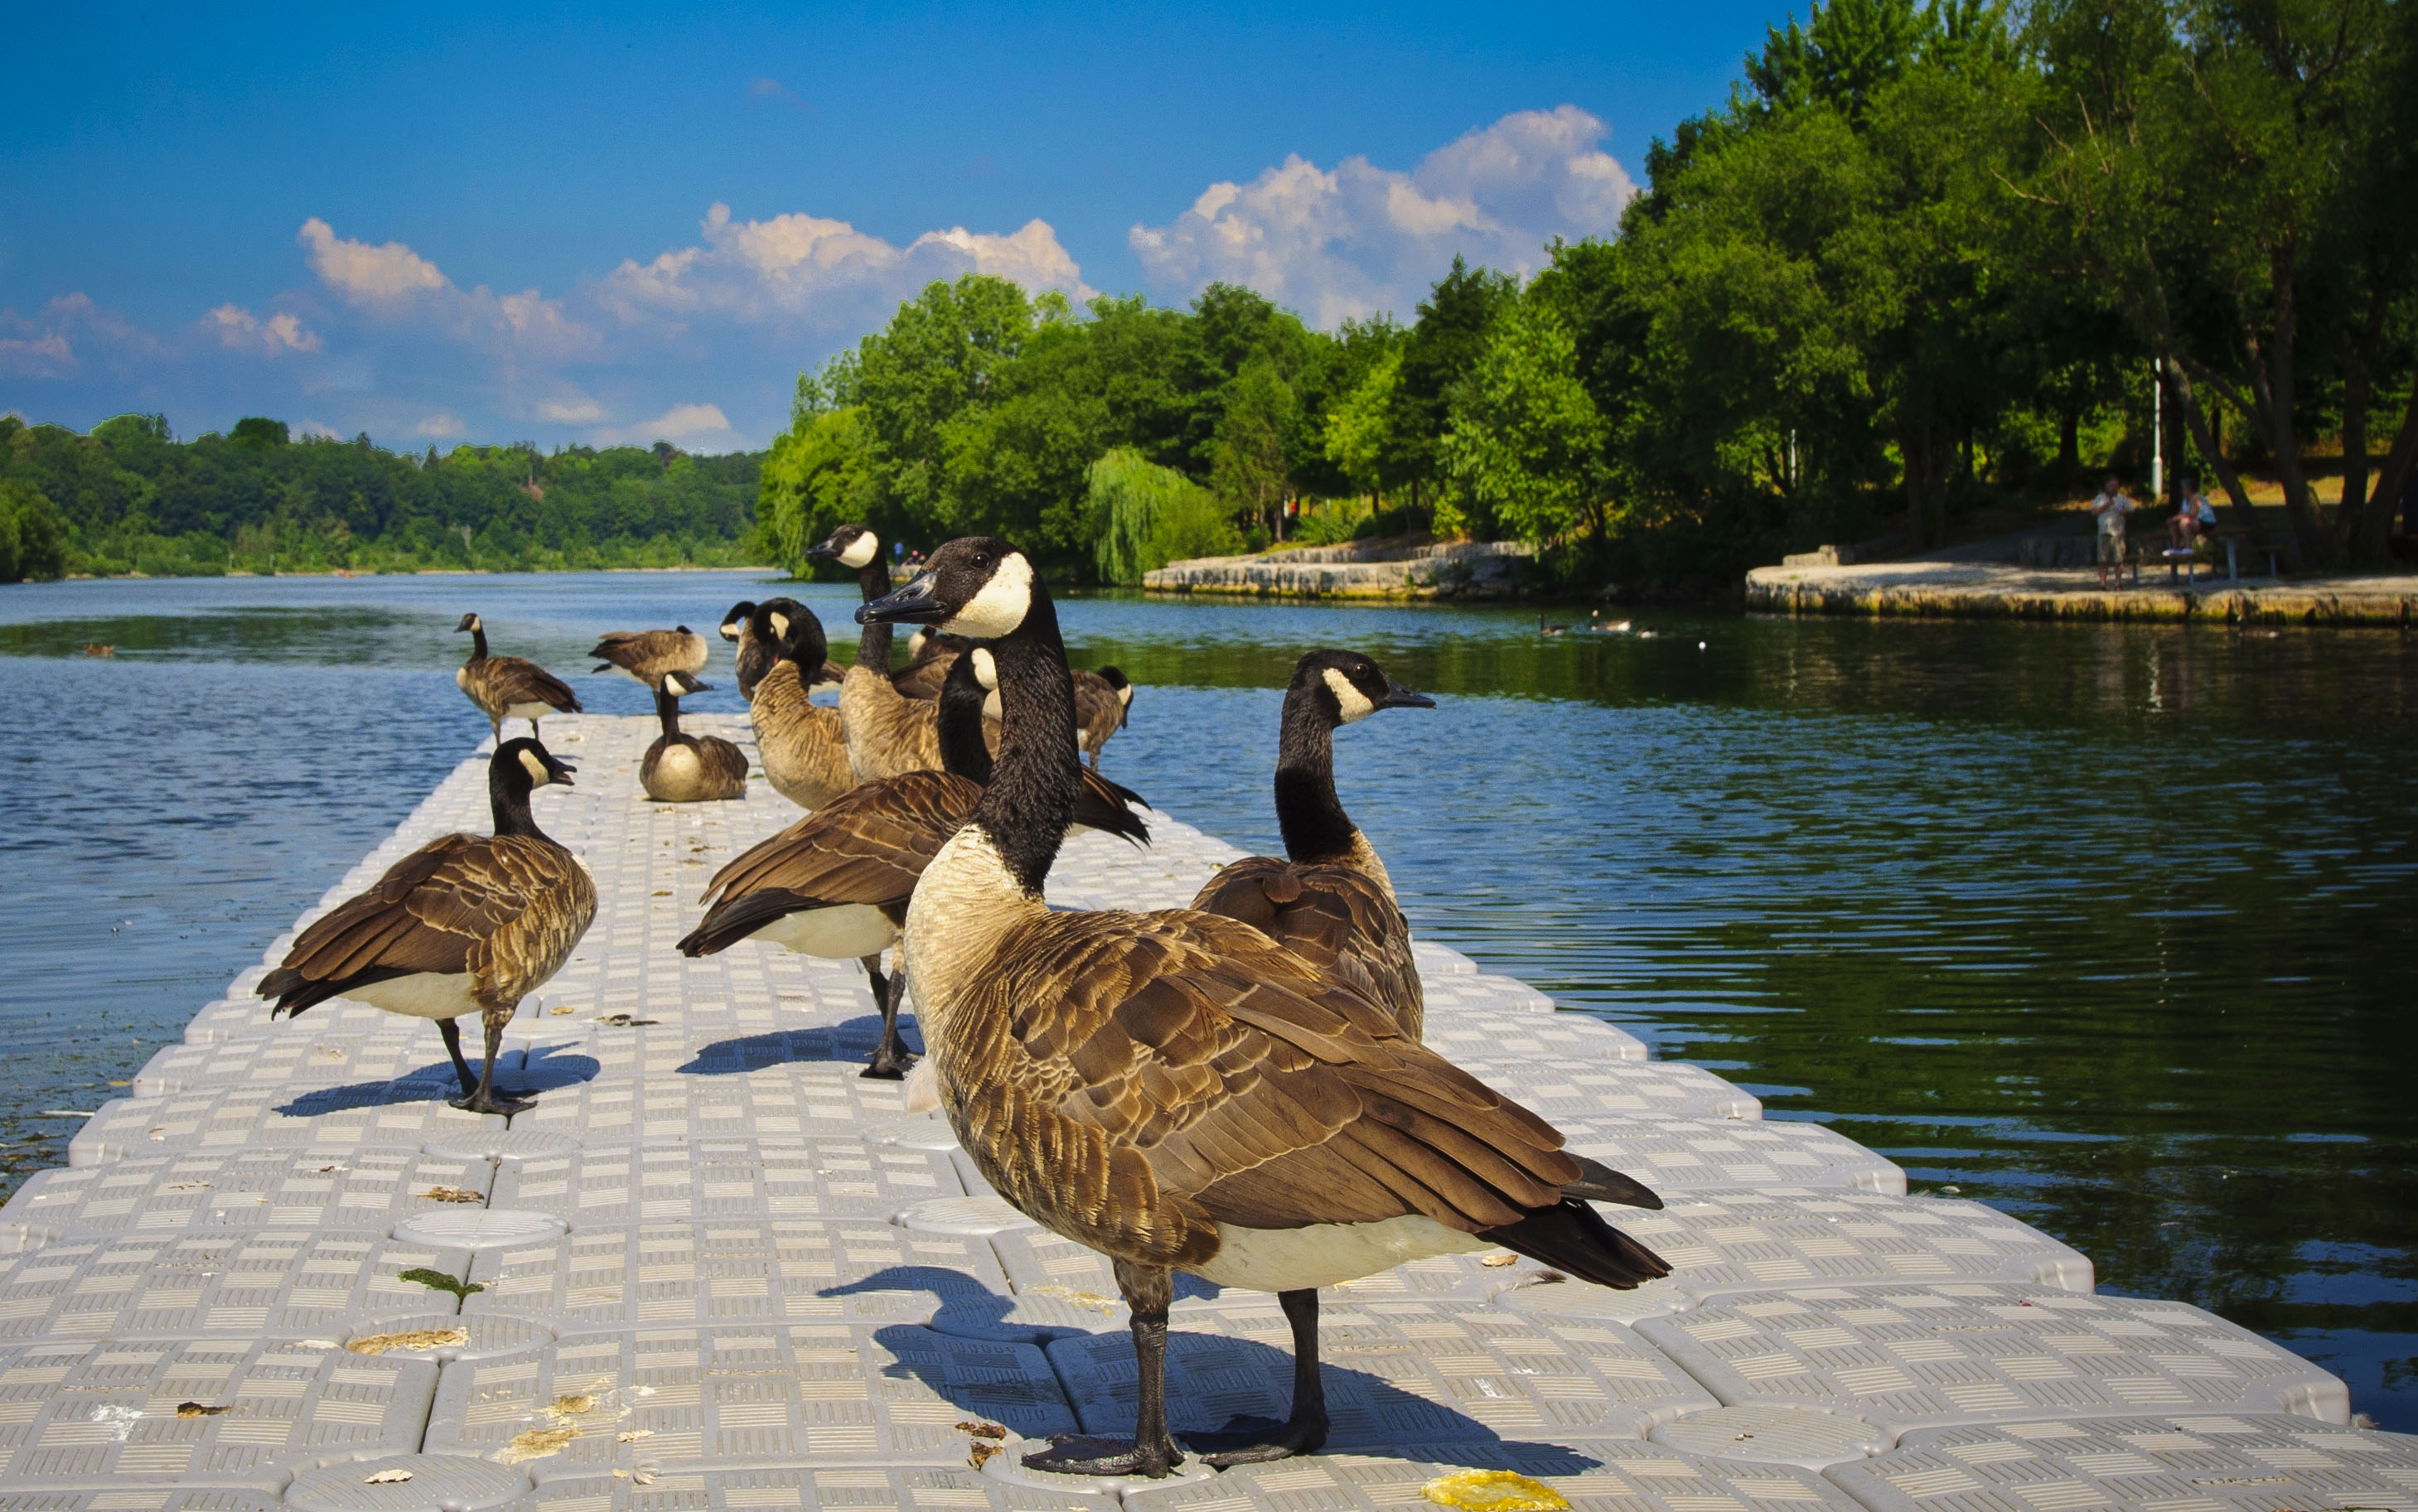 131031 download wallpaper Animals, Ducks, Lake, Pond, Land, Sit, Tile, People, Park, Trees screensavers and pictures for free